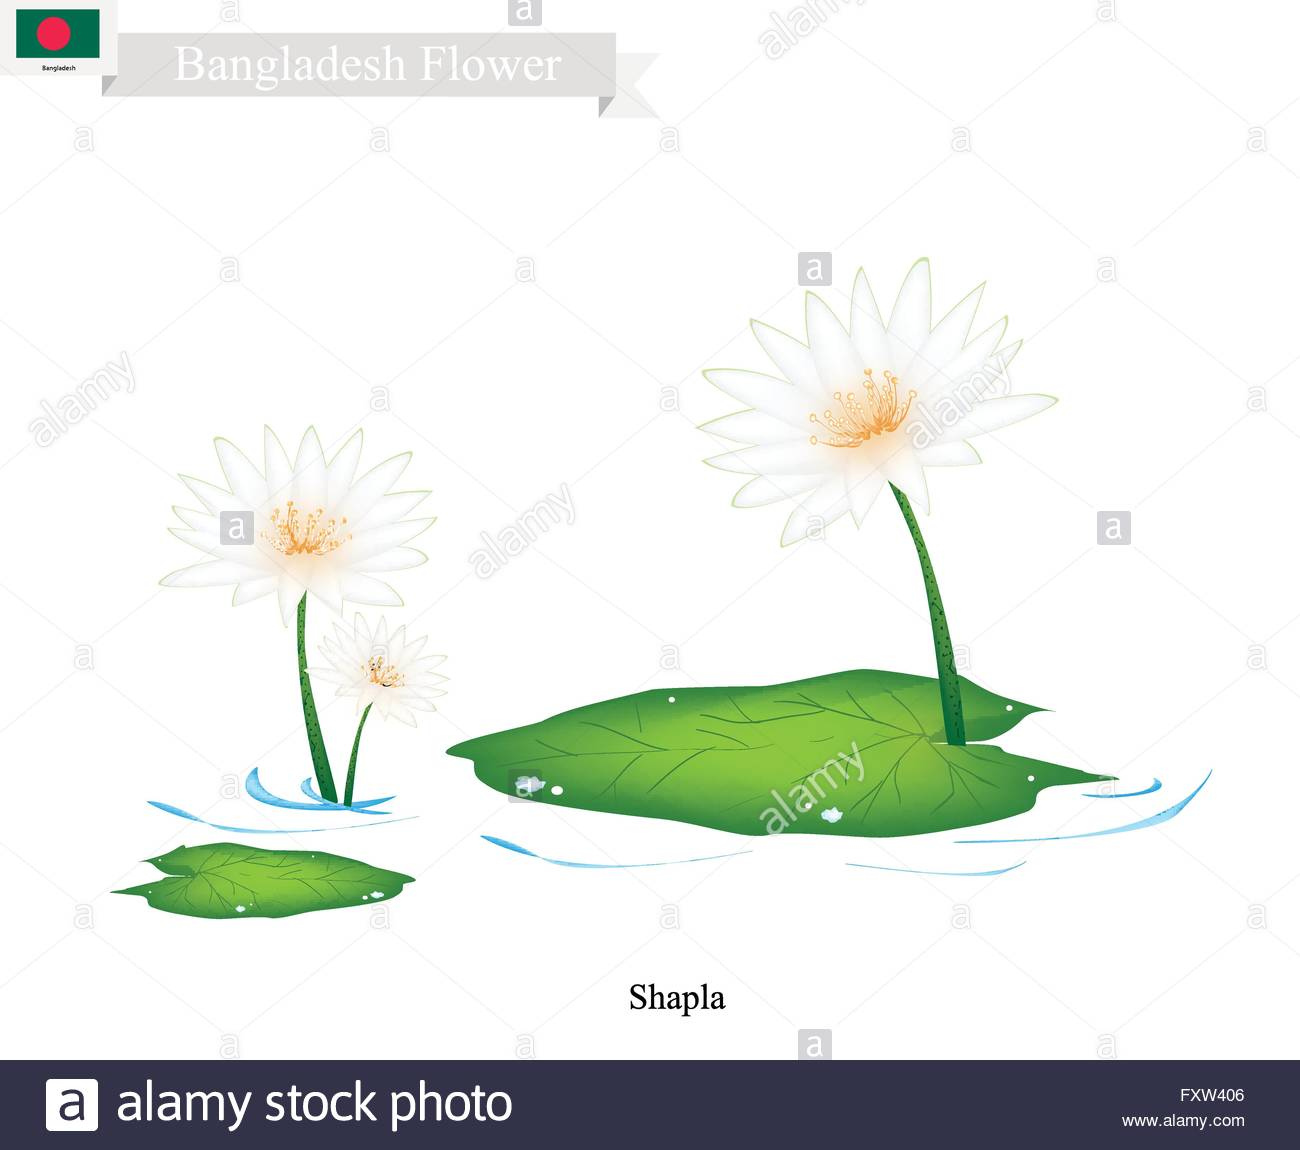 Bangladesh Flower, Illustration Of Shapla, Water Lily Or Lotus.